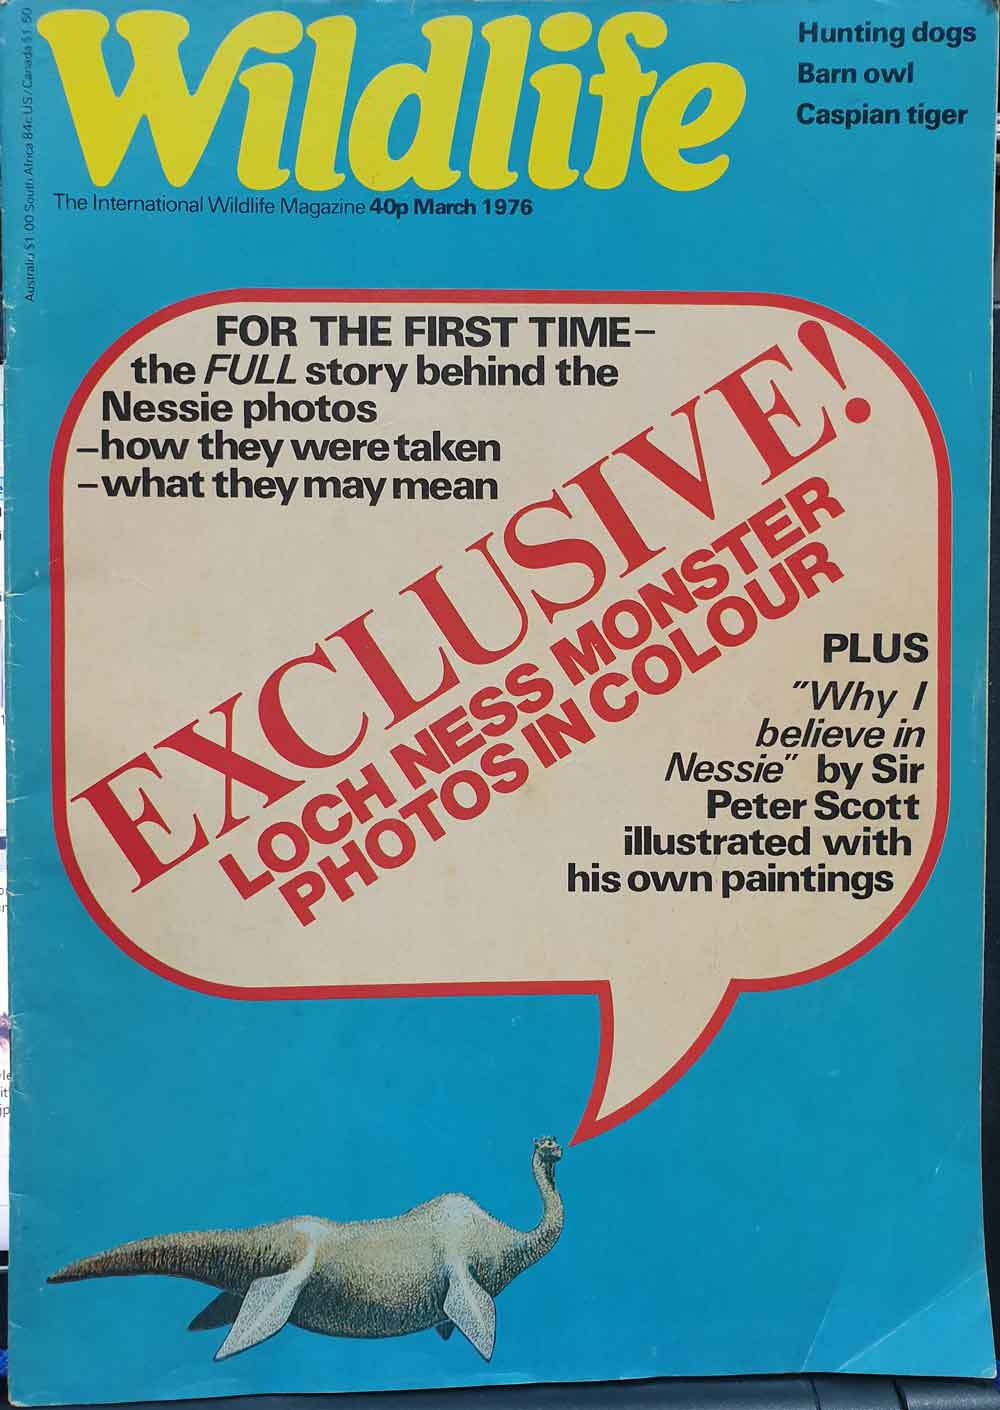 By the mid 1970s, Peter Scott was happy to publicly state a belief in the Loch Ness Monster, and there are even photographs of him wearing an 'I Believe in Nessie' t-shirt. Here's the cover of a magazine issue that features a key Scott article on the subject. Image: Darren Naish.